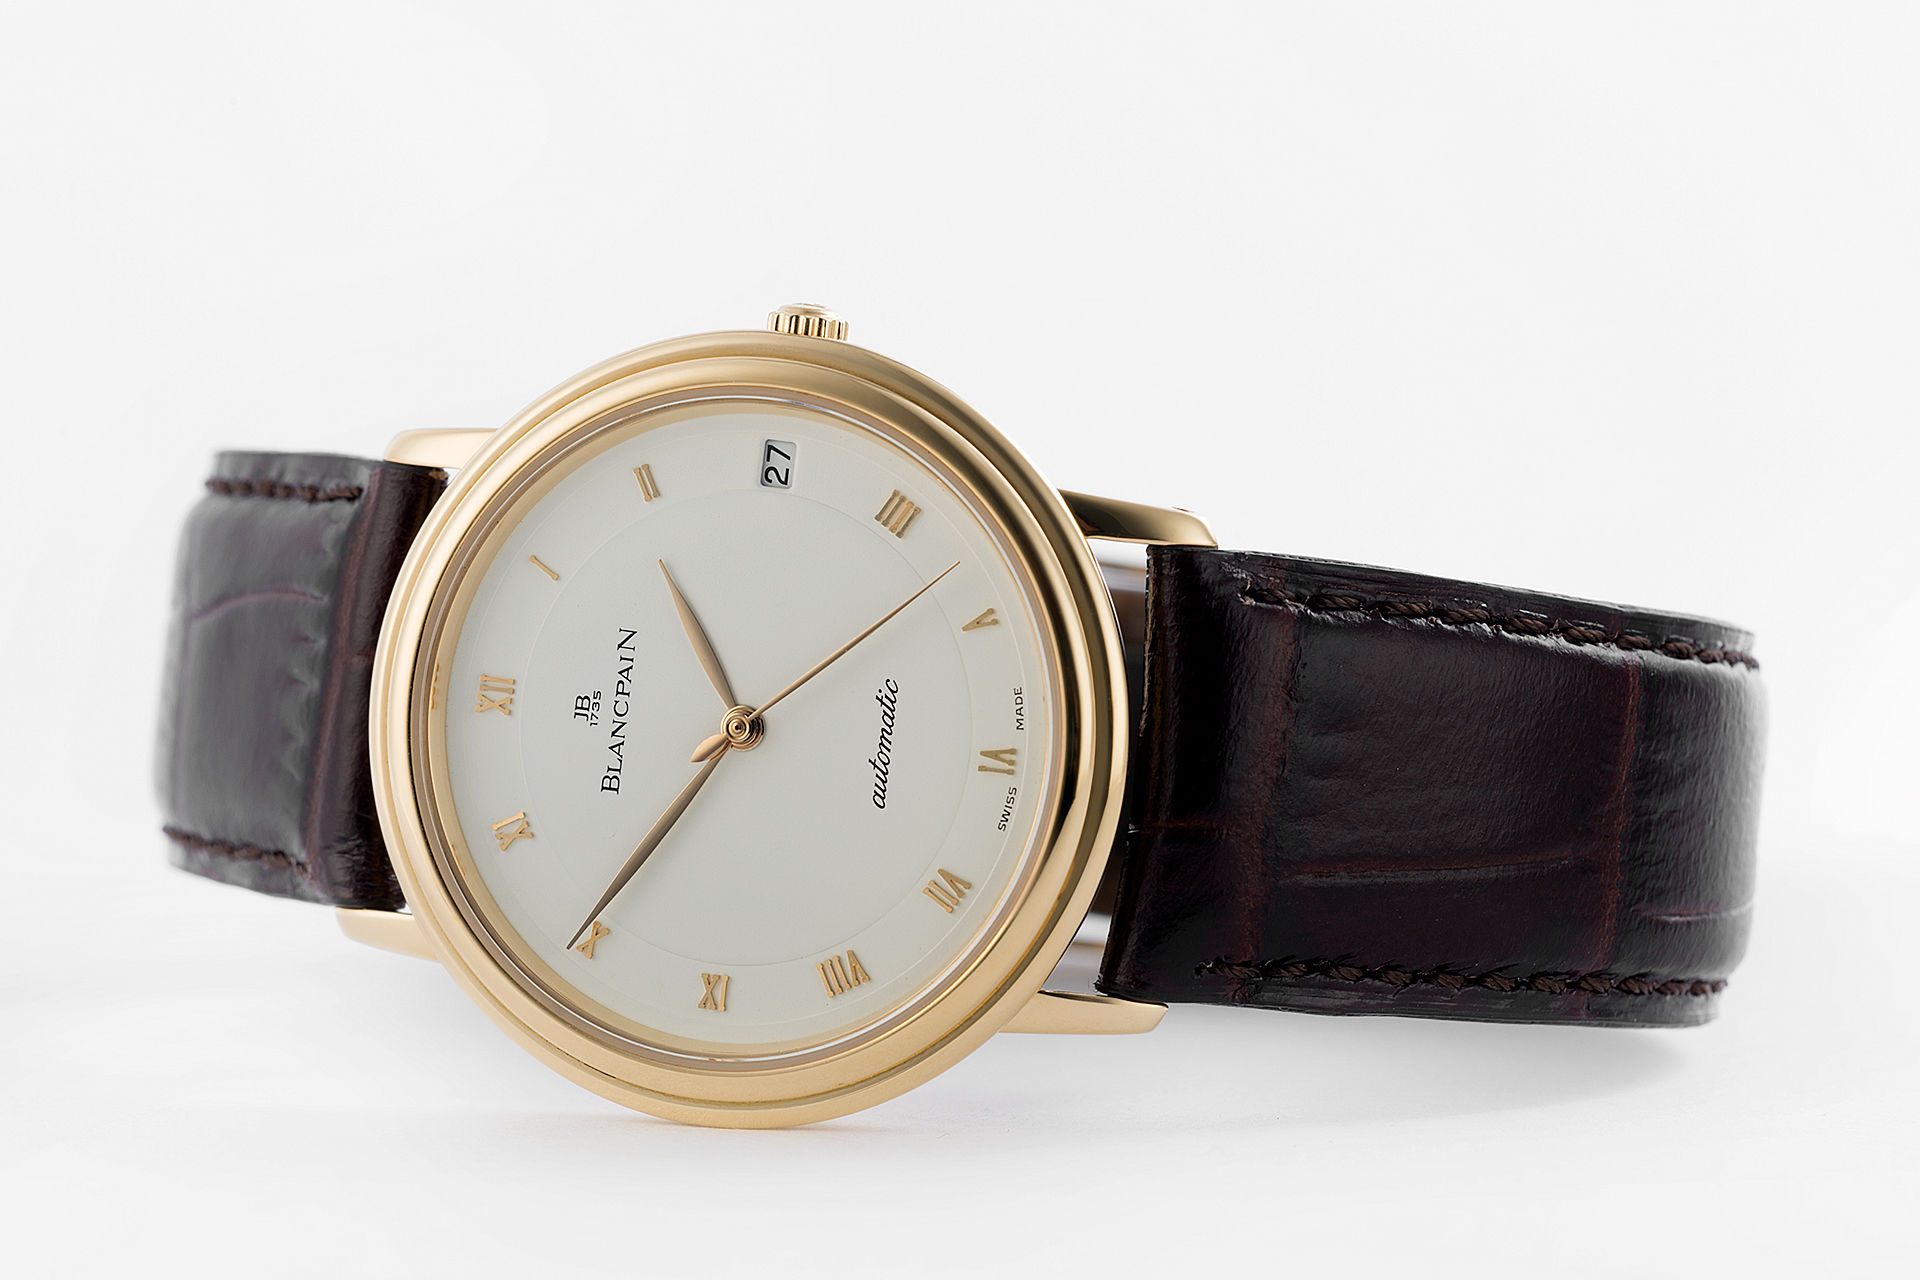 ref 1151-1418-55 | 18ct Yellow Gold 'Ultra Thin' | Blancpain Villeret